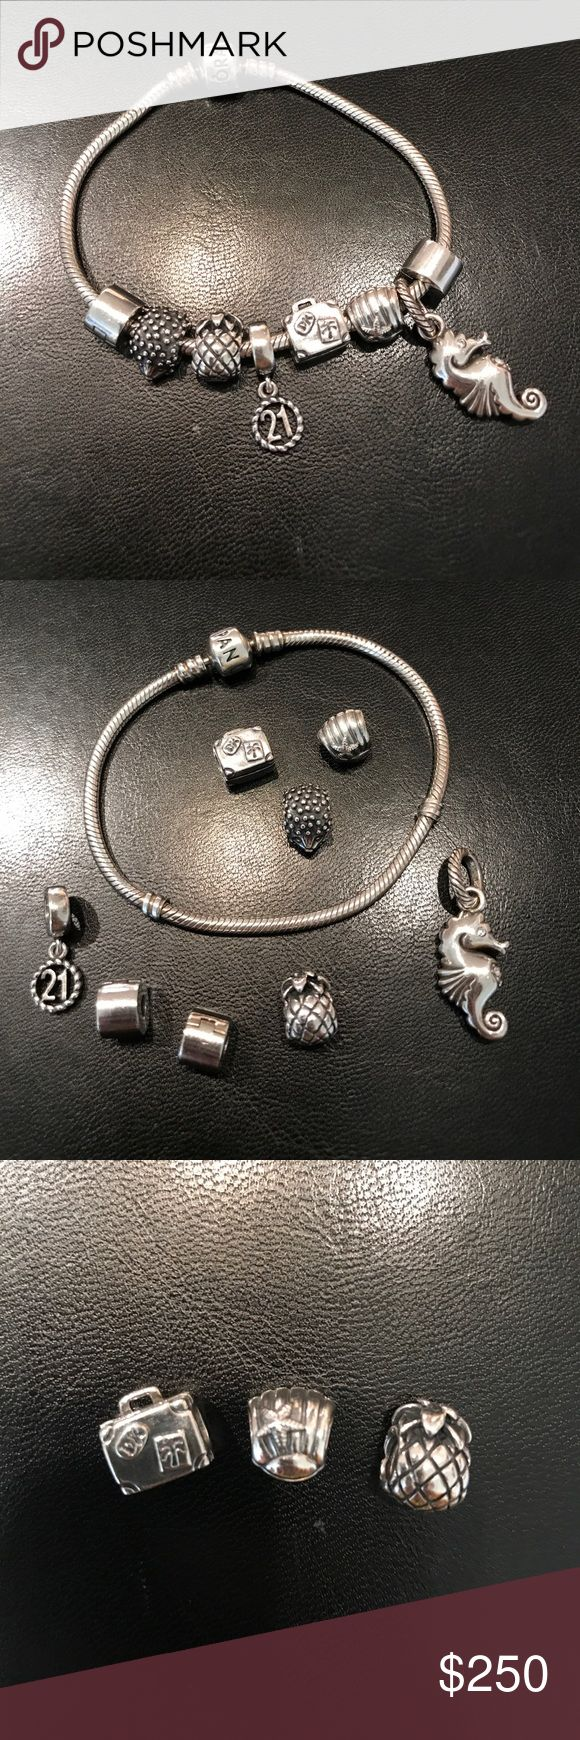 """AUTHENTIC PANDORA Iconic Sterling Silver Bracelet Authentic Pandora Iconic Original Charm Bracelet! Has been worn quite a few times but had been cleaned with the Sterling silver cleaning cloth and has been cleaned in store. The Bracelet itself is size 7.5"""". Selling as a whole set! Comes with two plain spacers, and five authentic Pandora charms plus one Brighton seahorse charm. ALL are 925 Sterling Silver. Also comes with an authentic Pandora cleaning cloth! Please let me know if you have any…"""